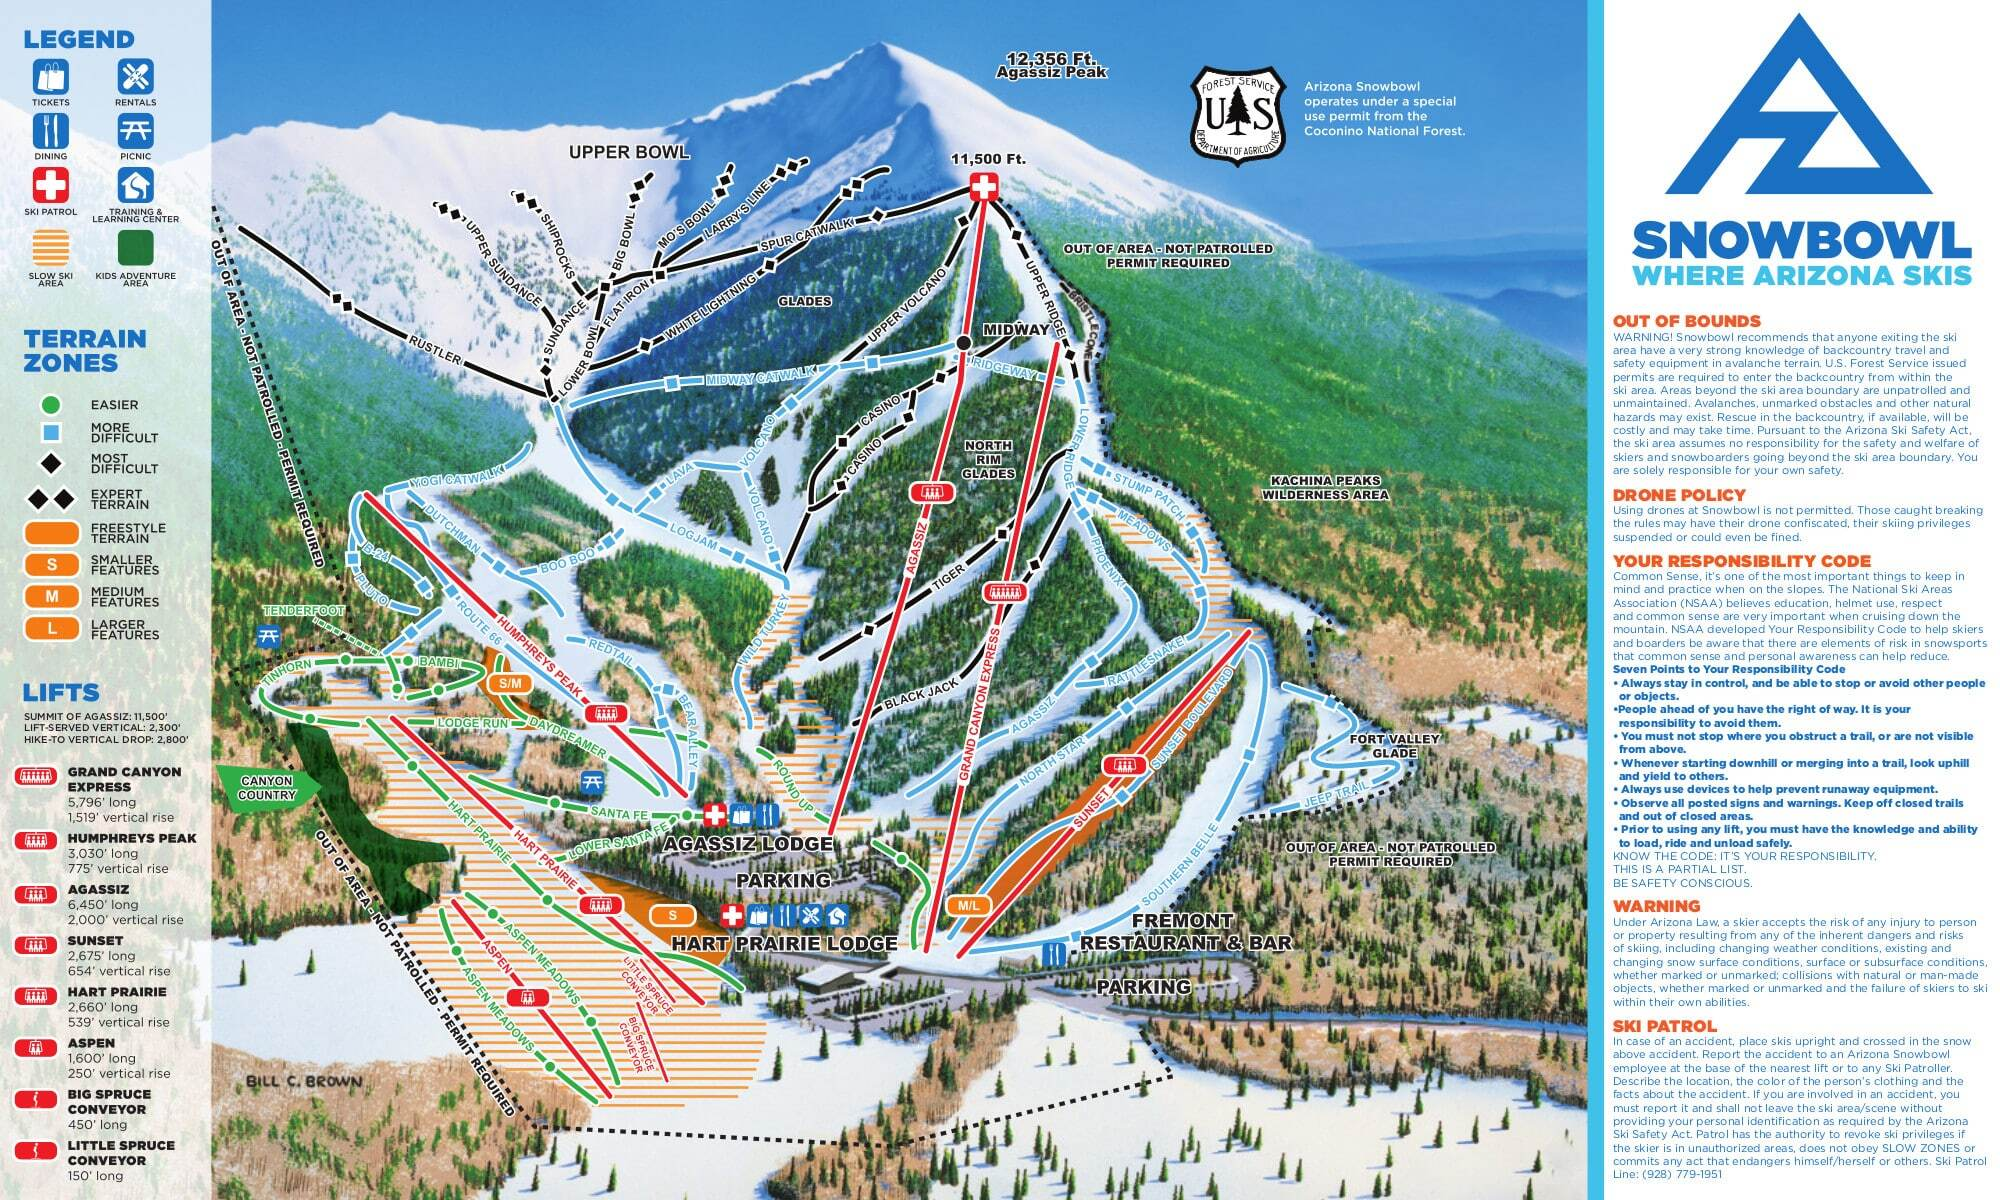 Arizona Snowbowl Piste / Trail Map